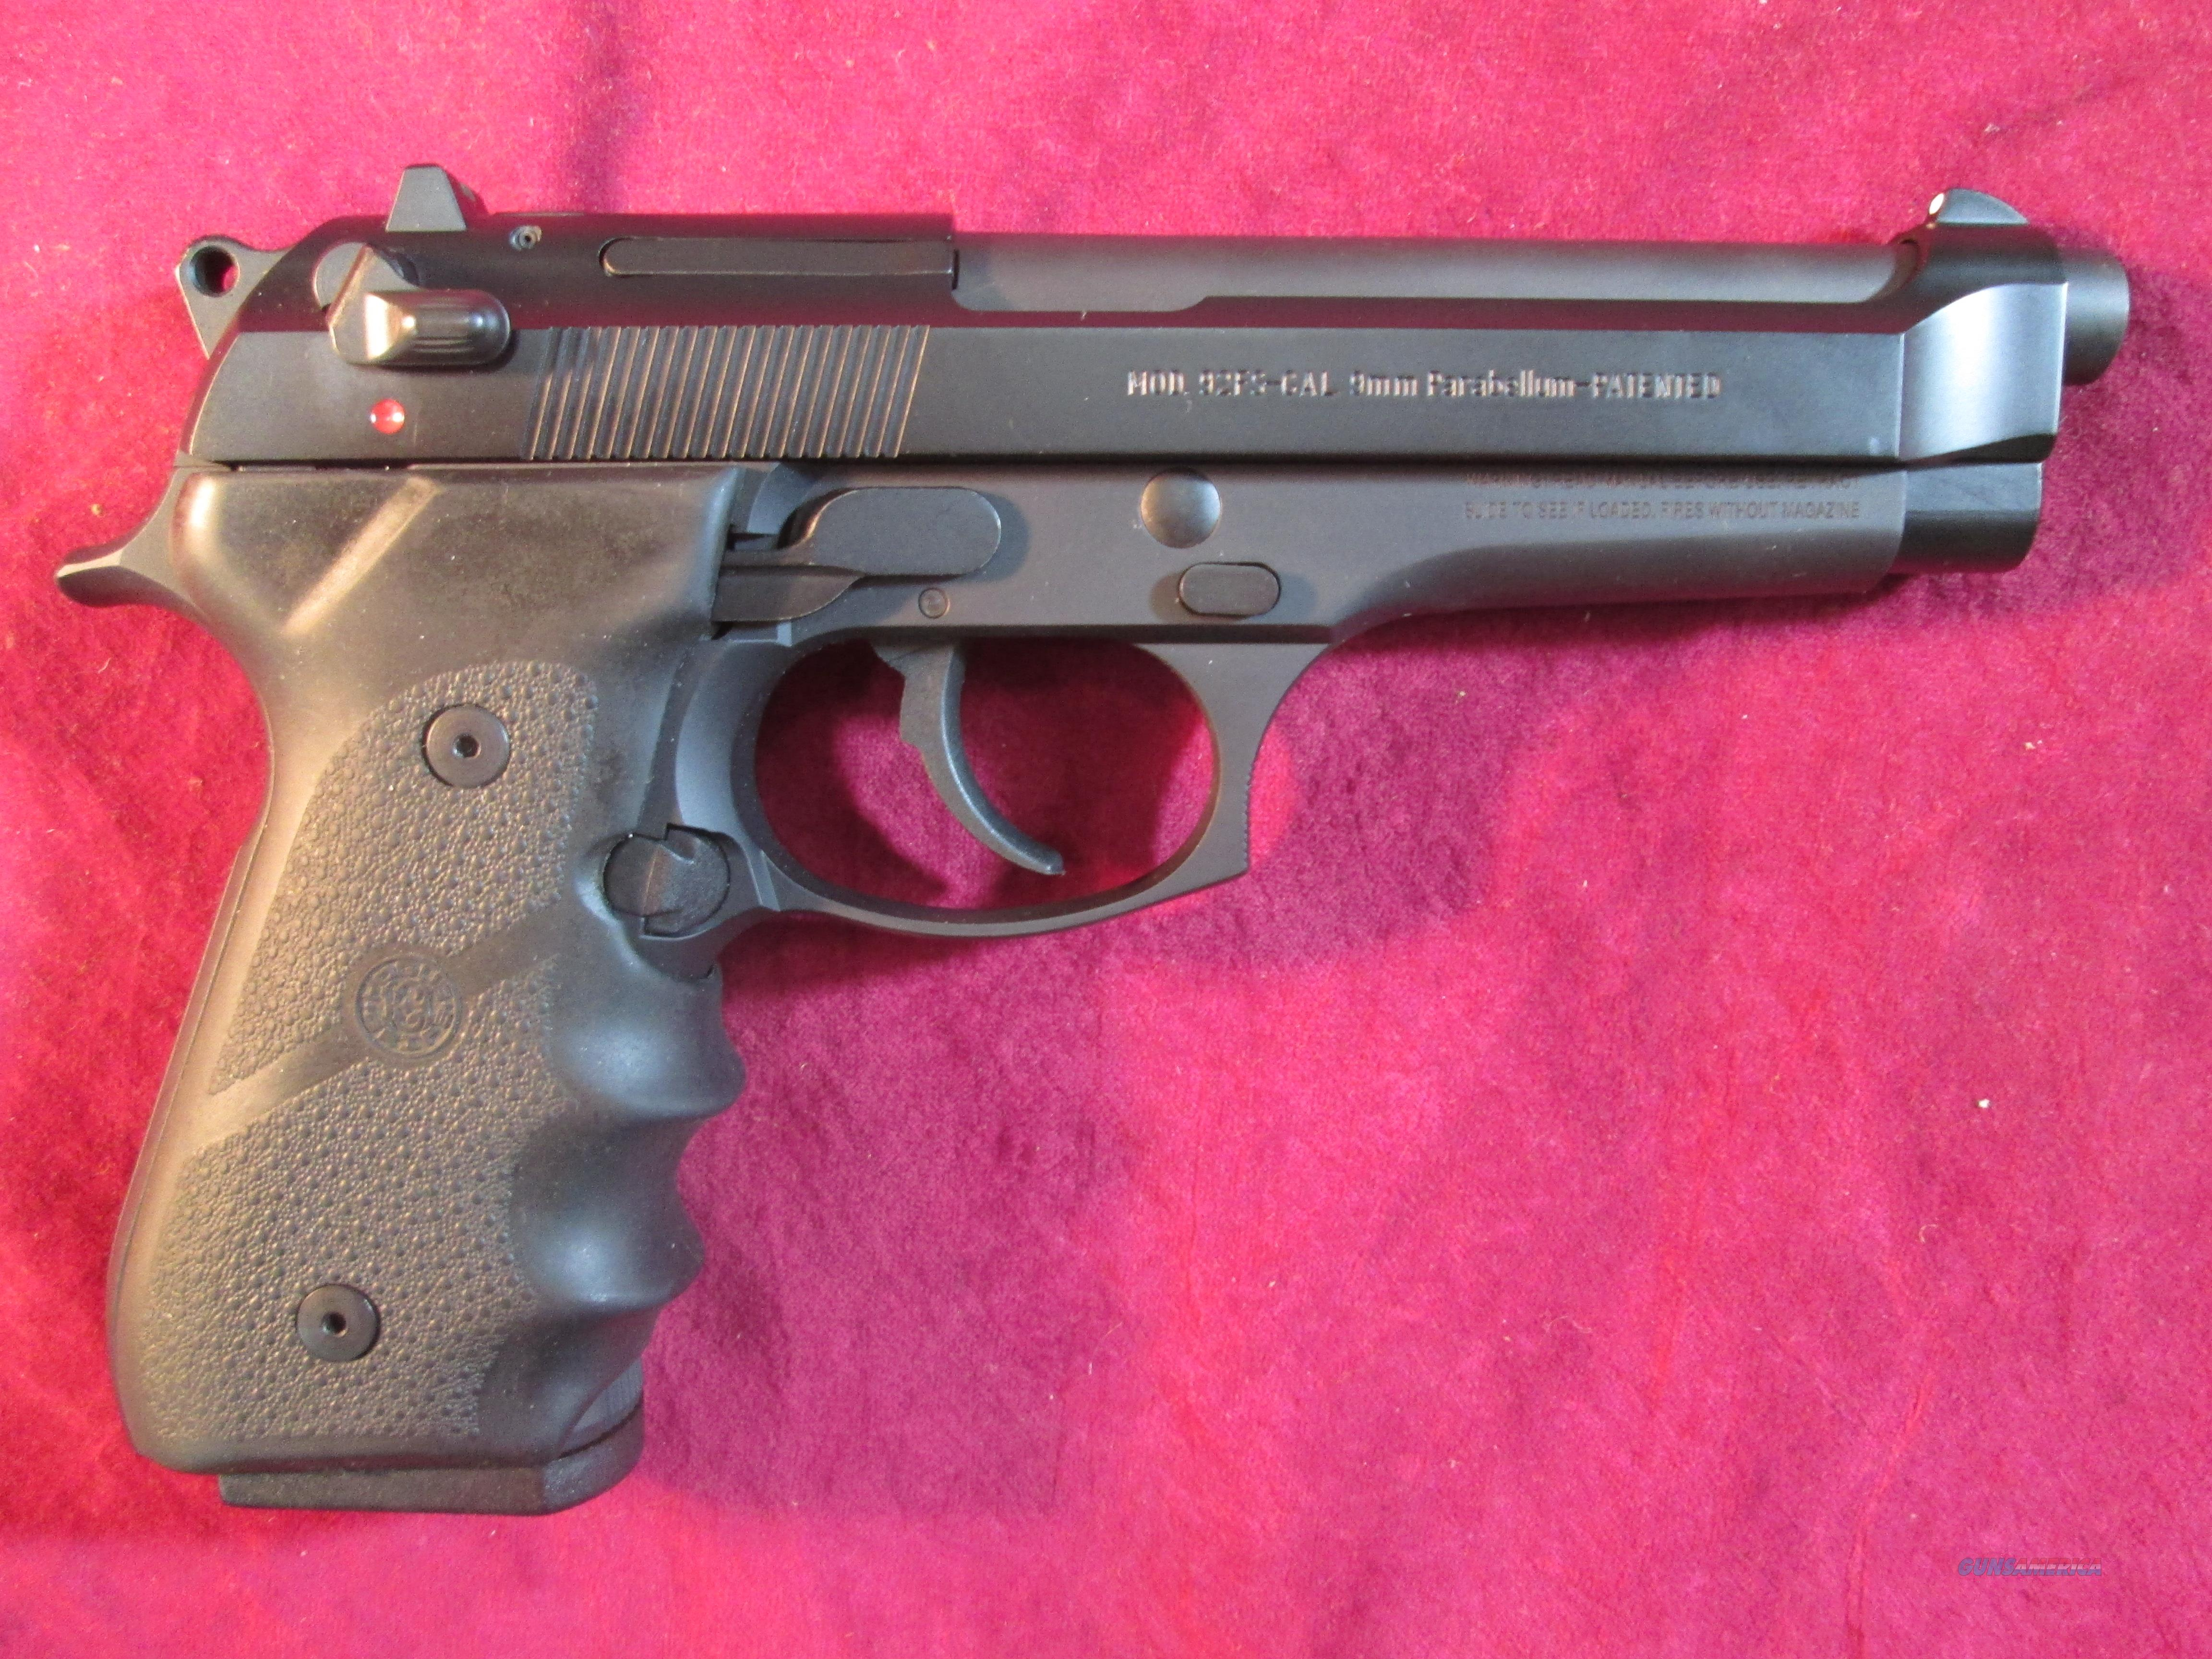 BERETTA 92FS 9MM W/ HOGUE GRIP AND 10 ROUND MAGS USED  Guns > Pistols > Beretta Pistols > Model 92 Series